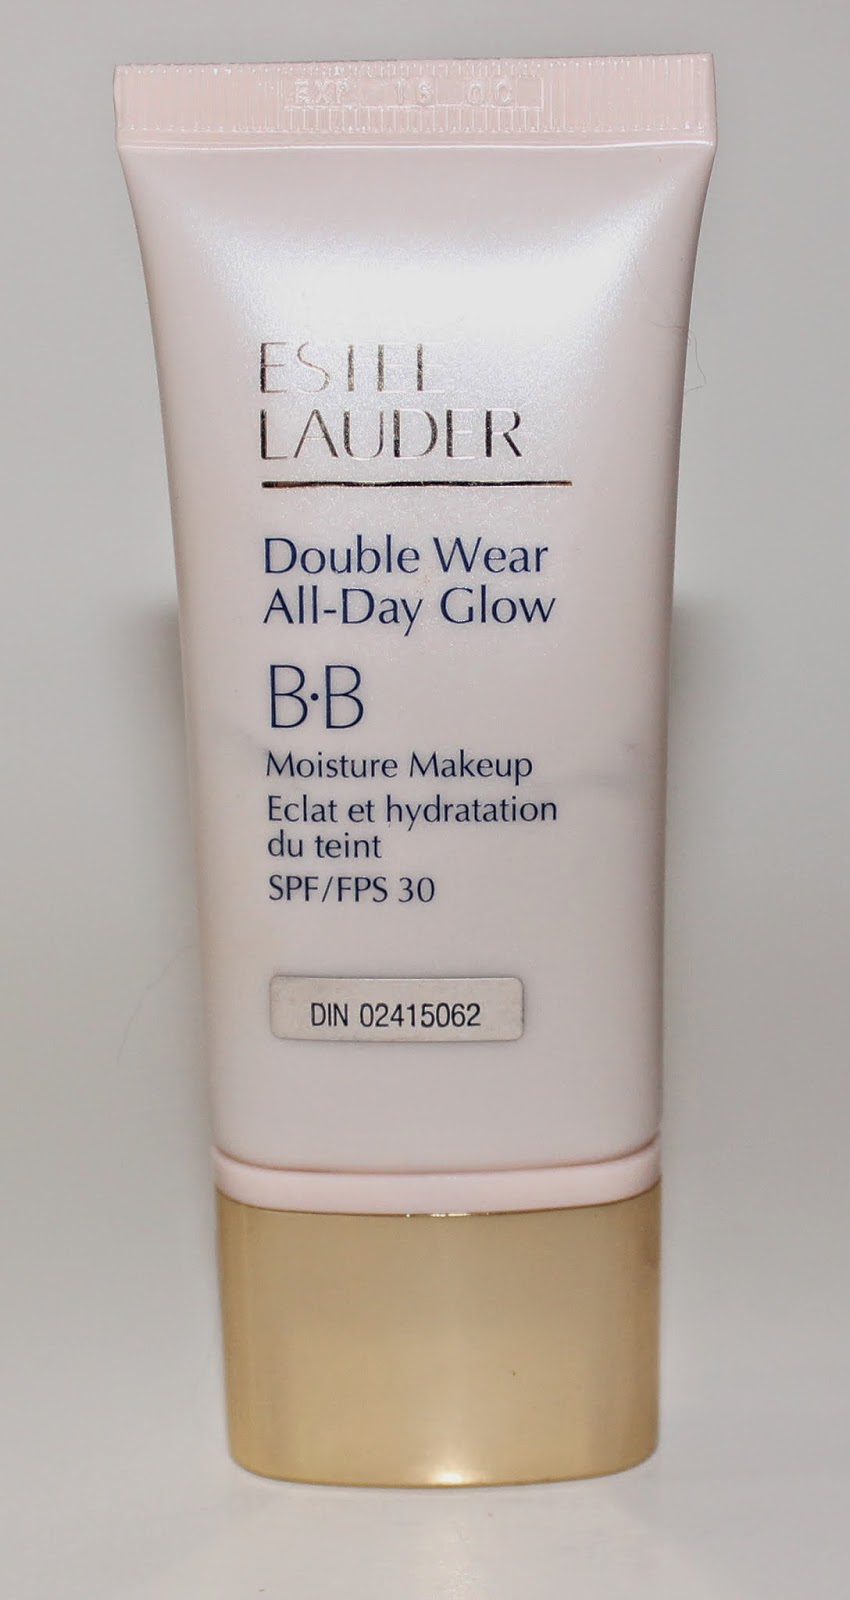 Estée Lauder Double Wear All-Day Glow BB Moisture Makeup SPF 30